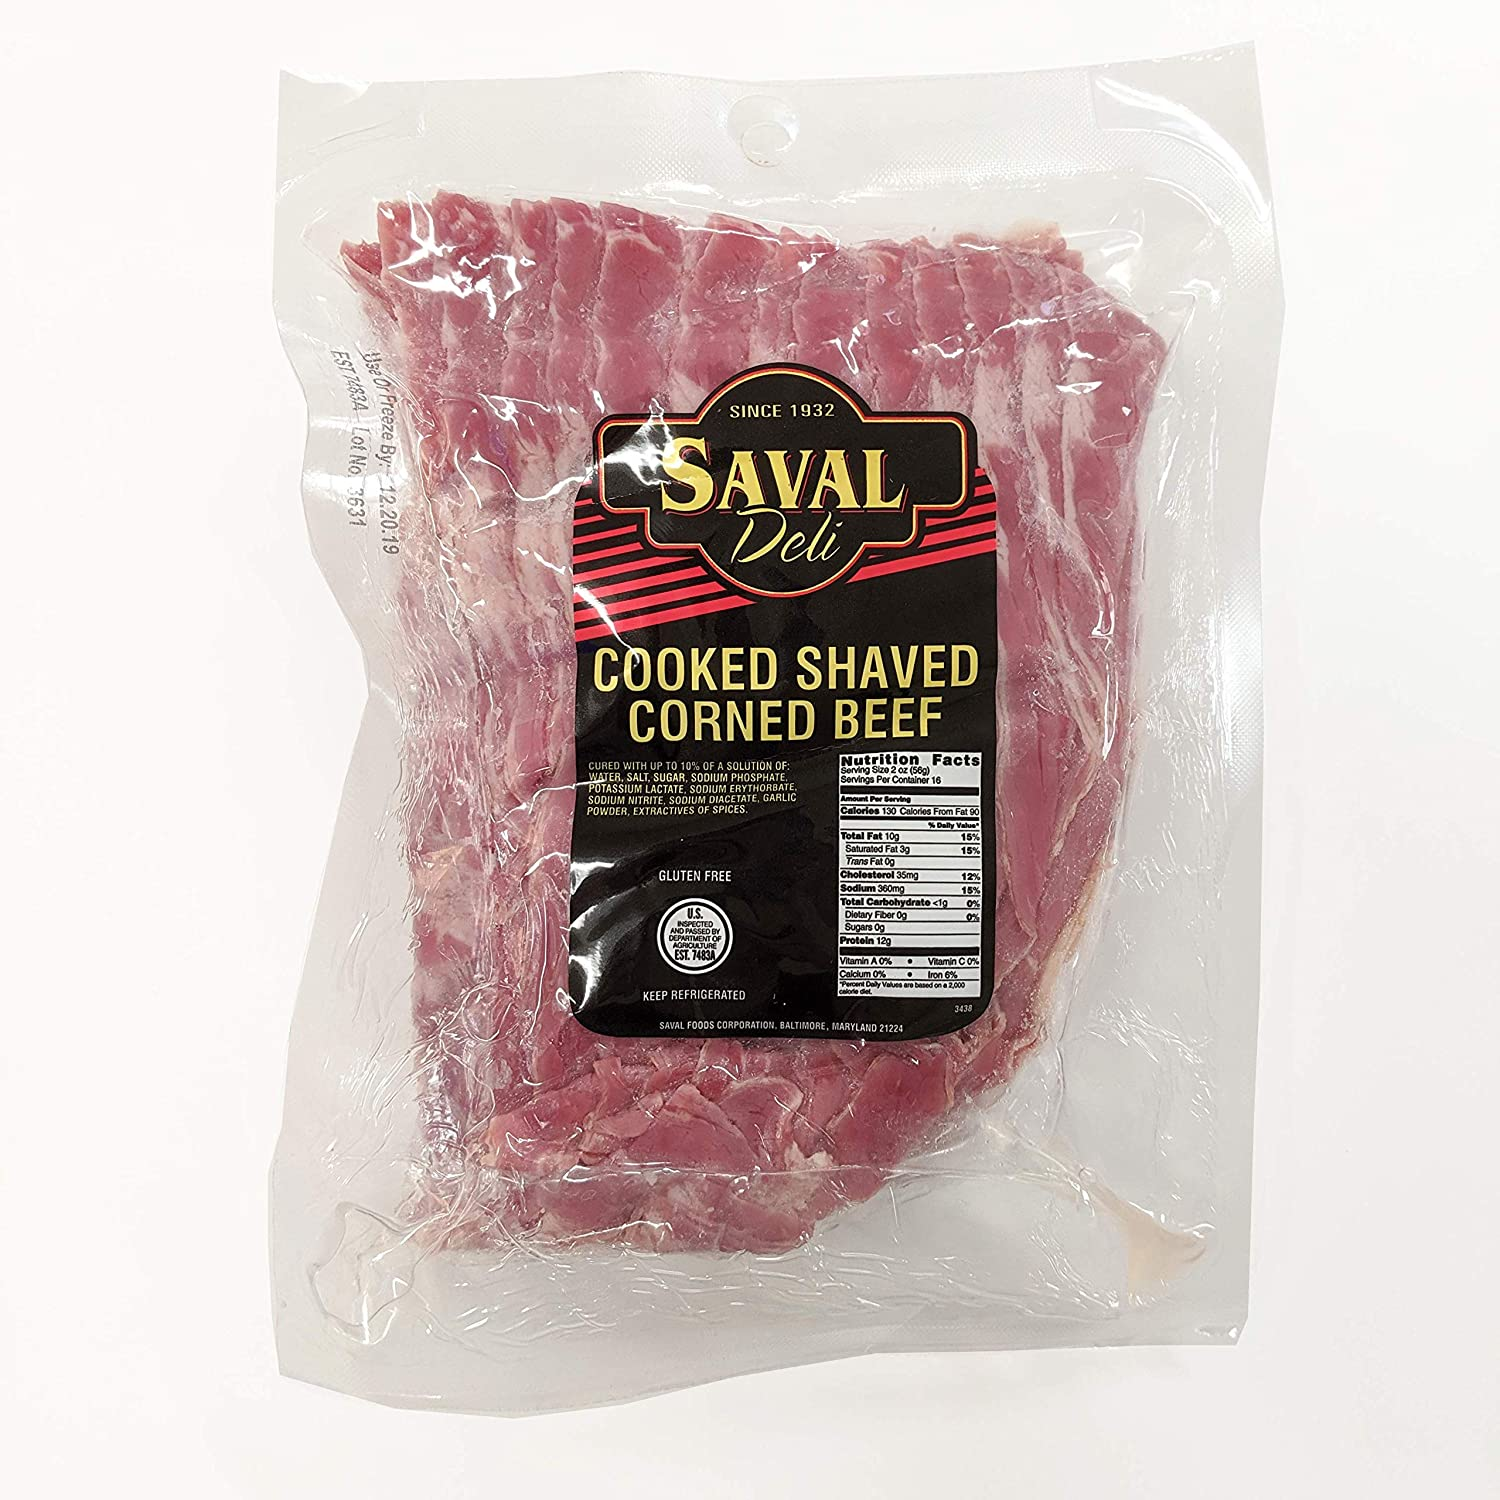 Saval Deli Cooked Shaved Corned Beef - 2 lbs.